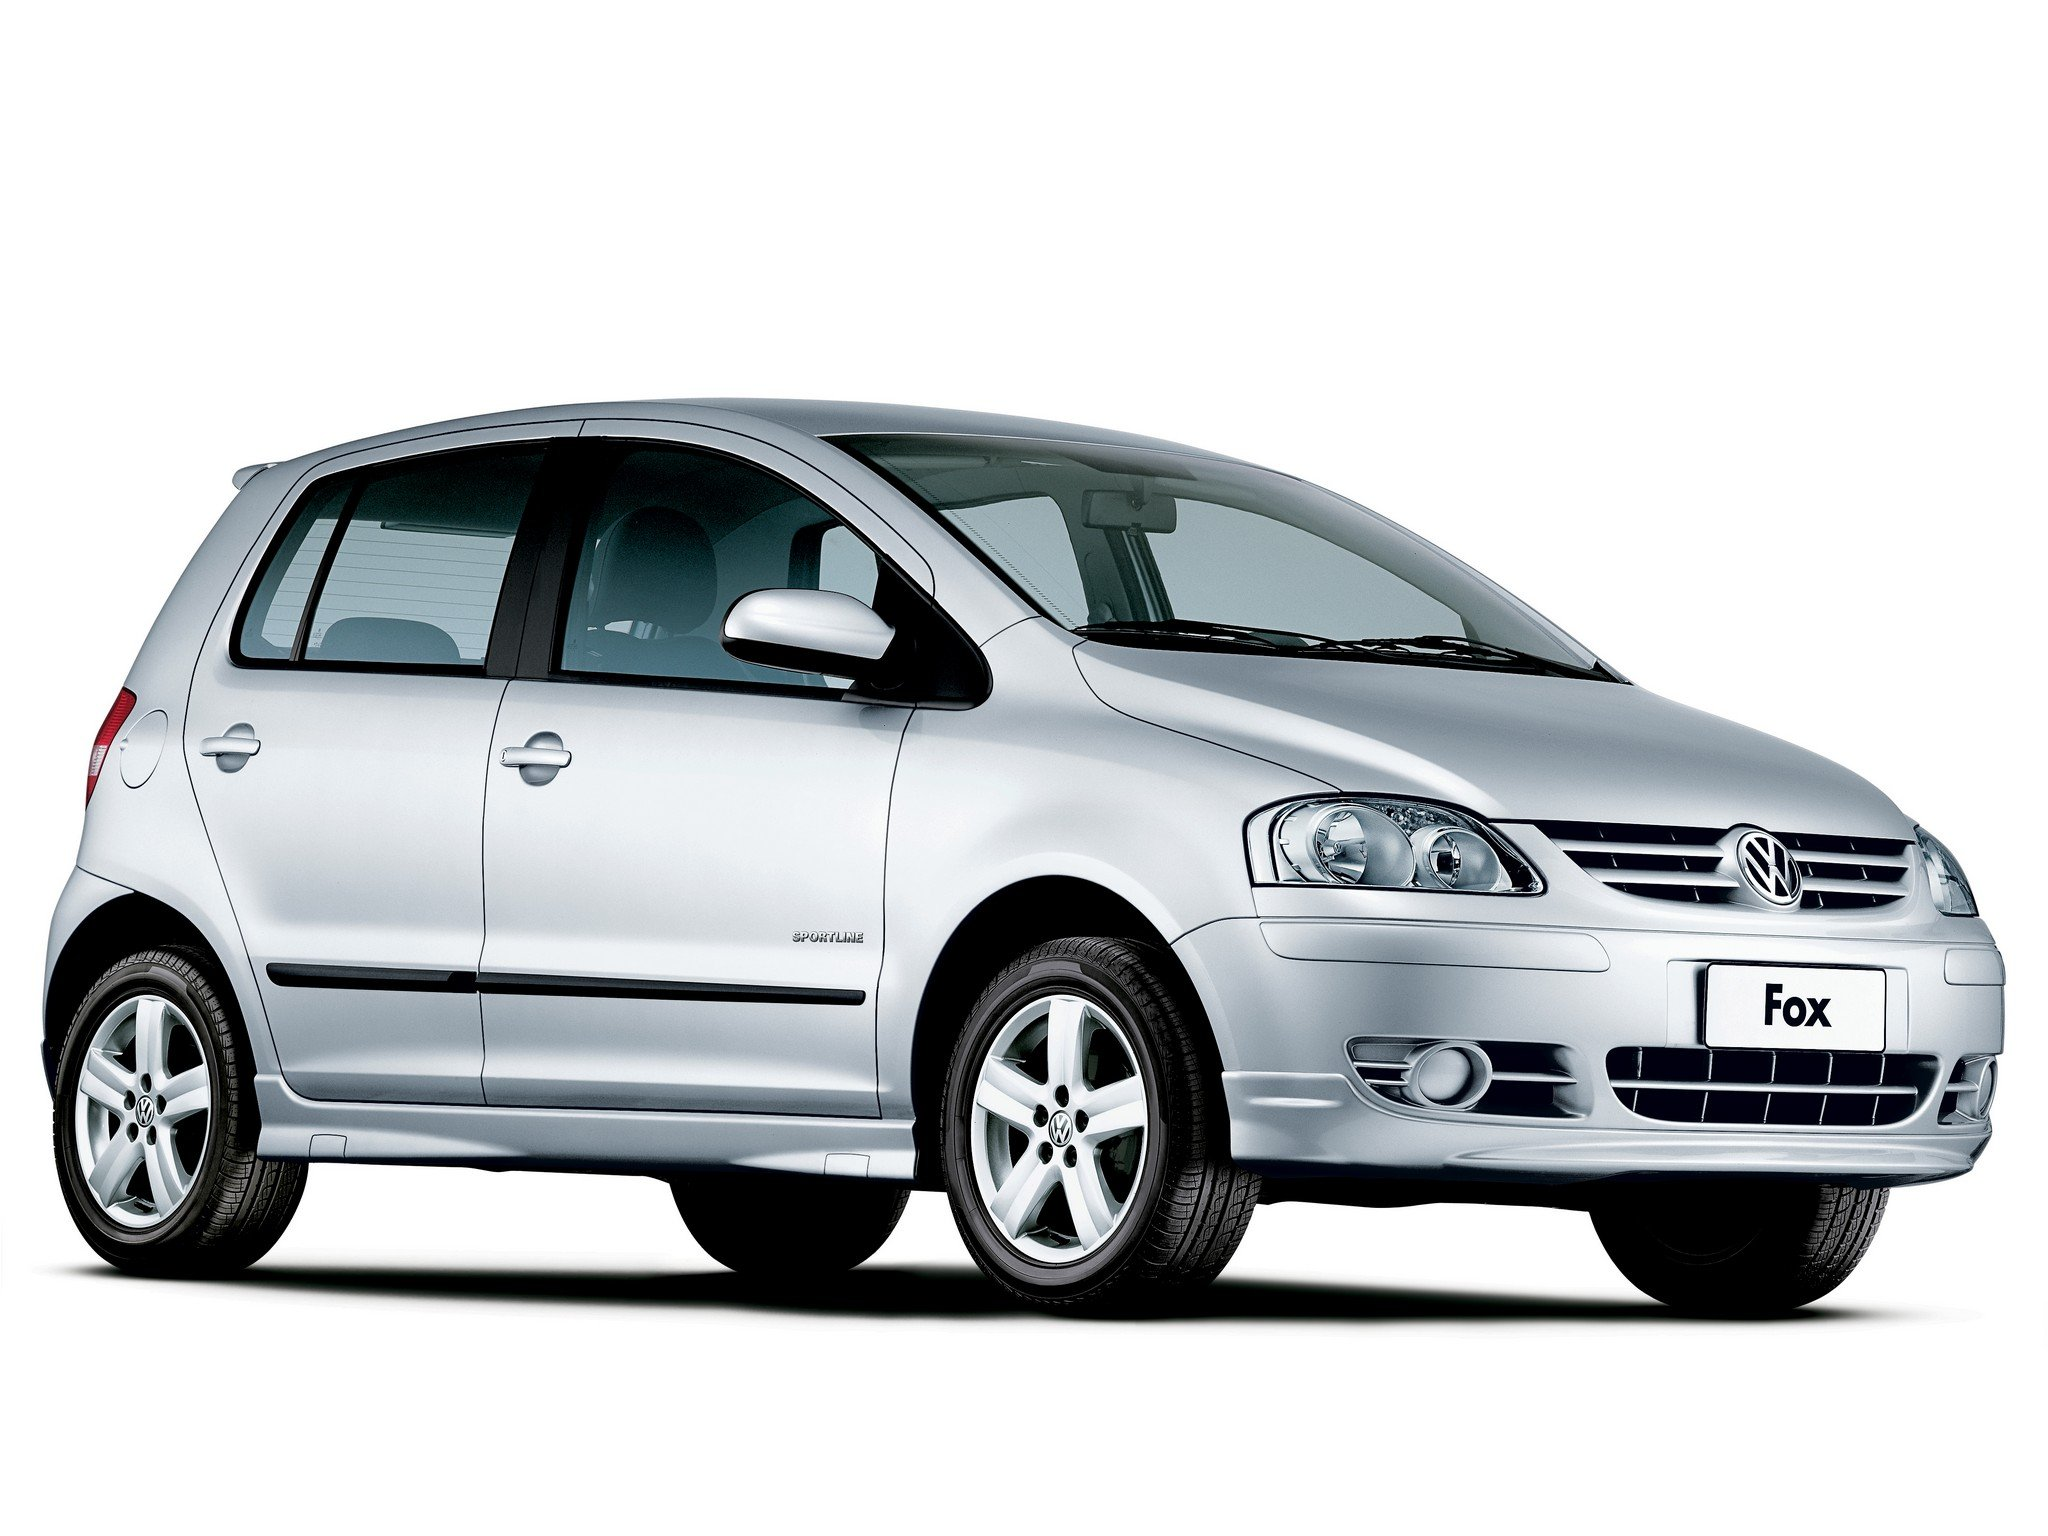 2007 volkswagen fox pictures information and specs for Fox honda used cars